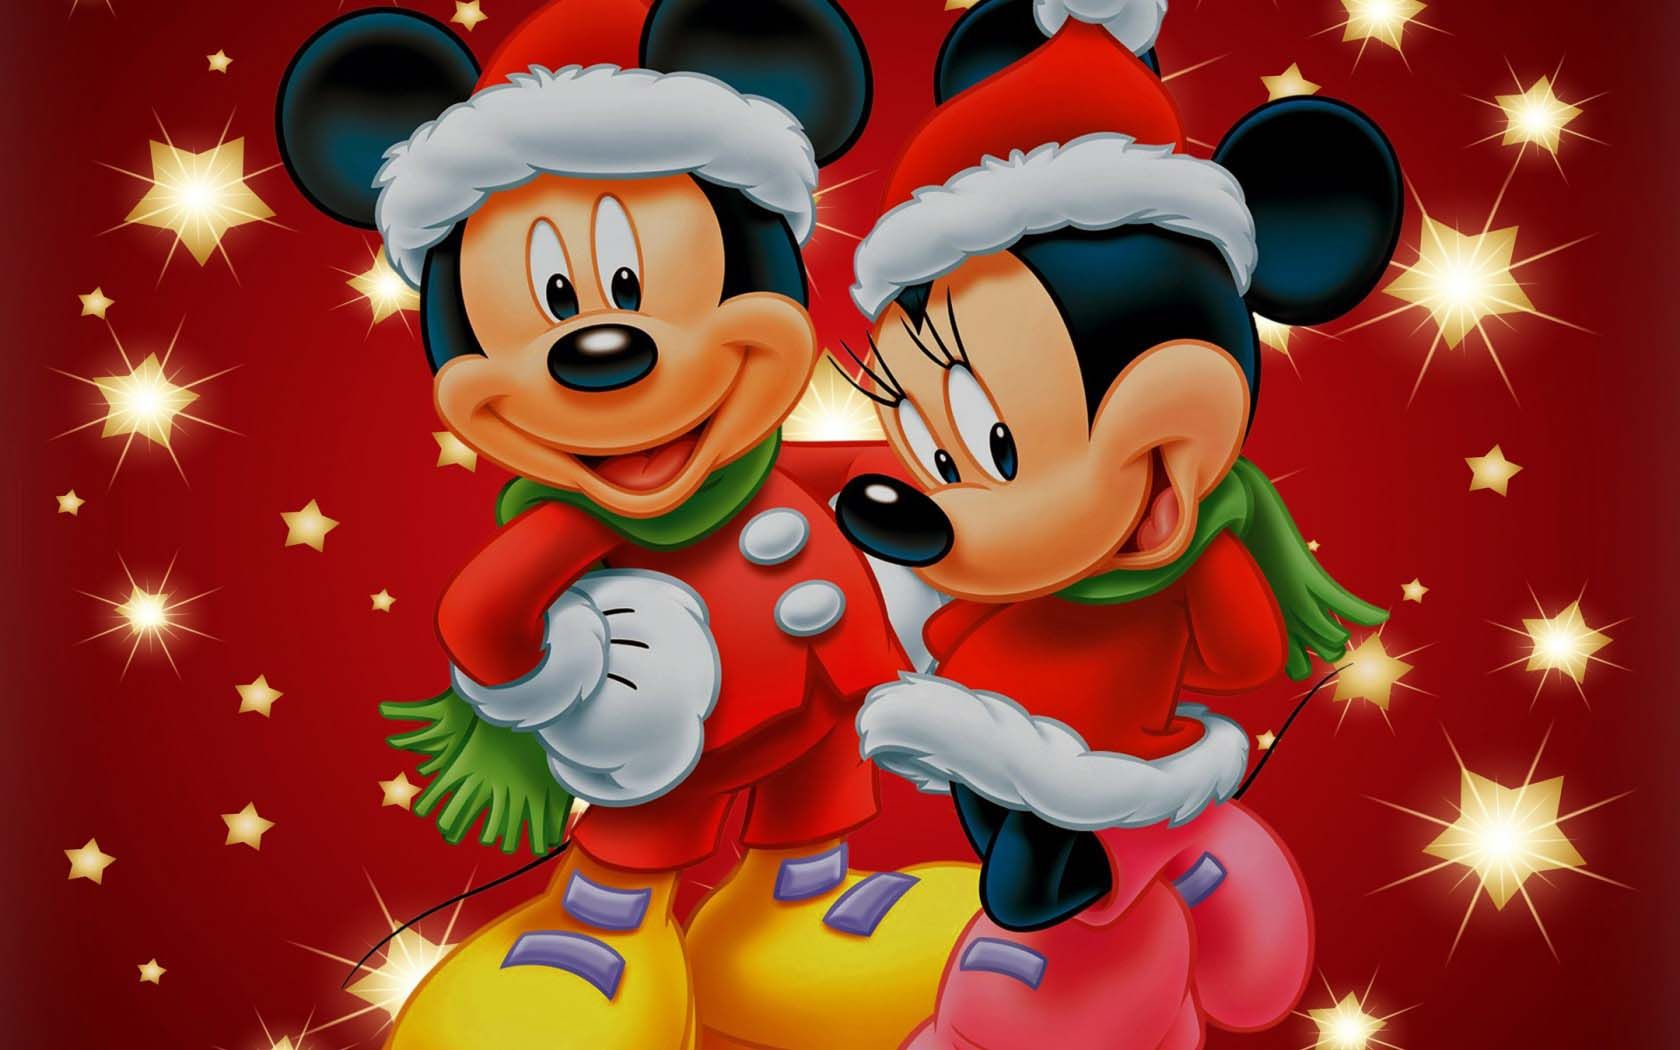 mickey mouse merry christmas wallpaper images pictures becuo - Merry Christmas Mickey Mouse